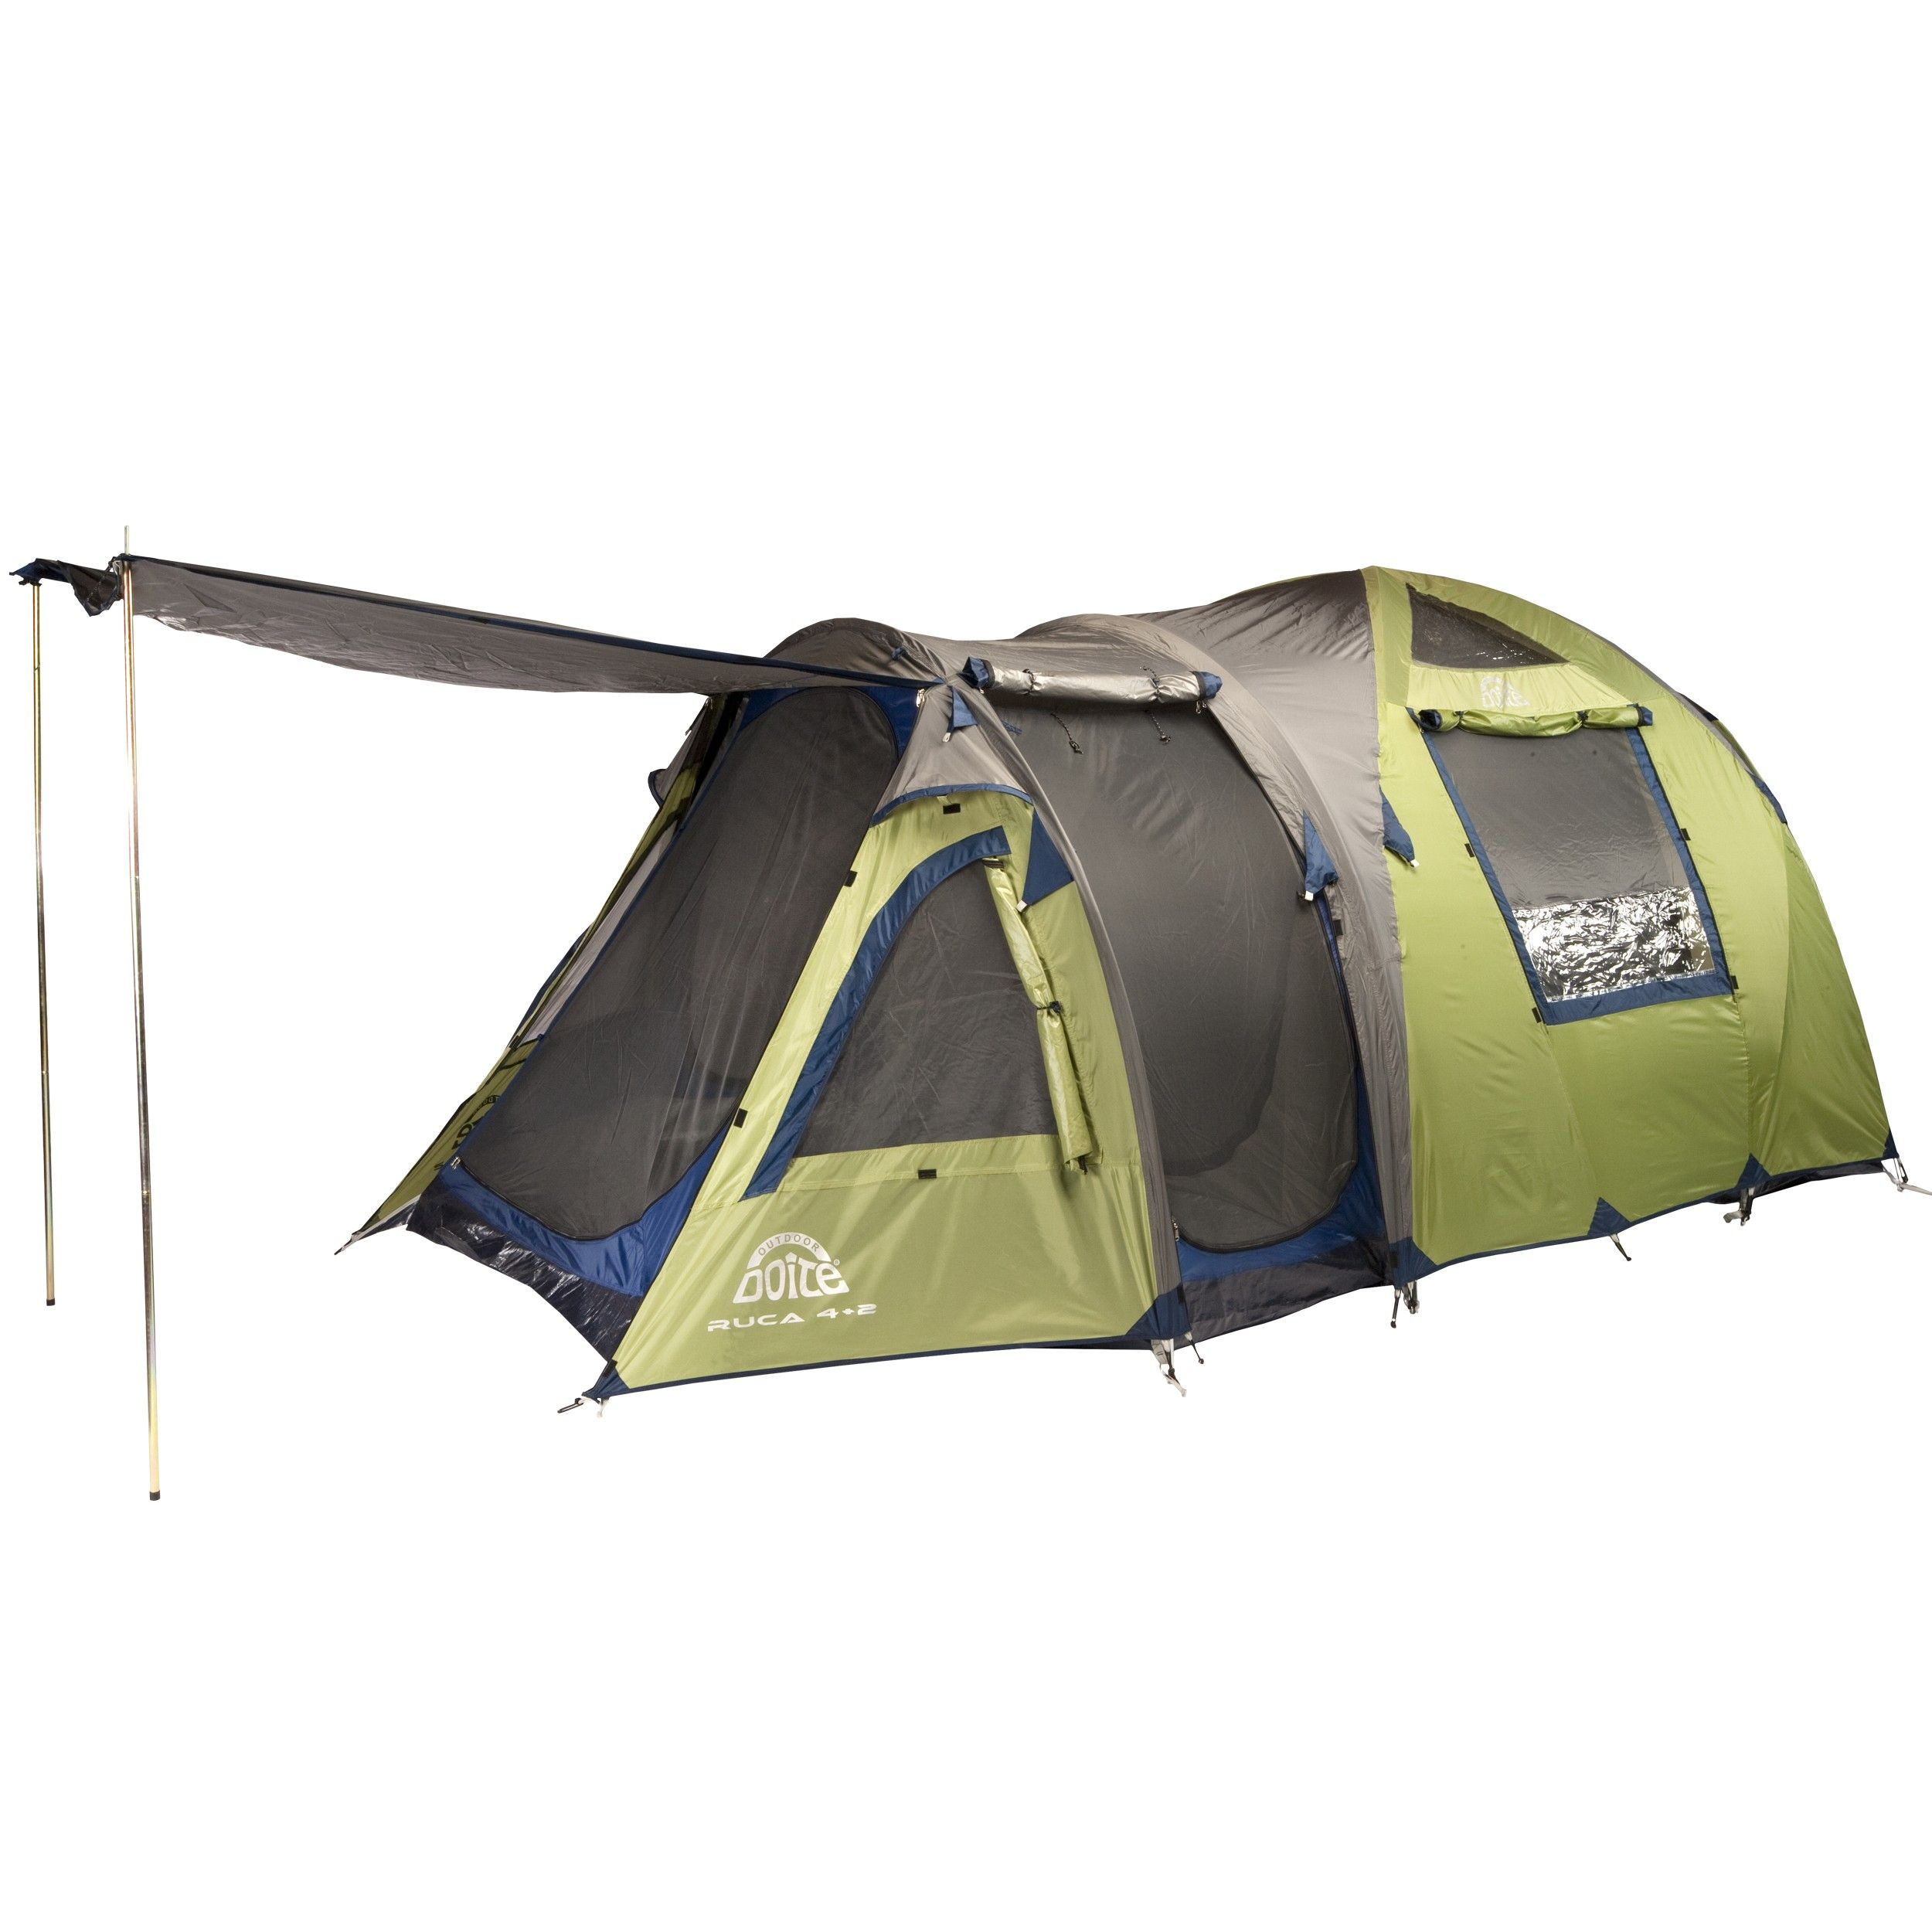 RUCA 4+2  sc 1 st  Pinterest & RUCA 4+2 | camping | Pinterest | Camping and Survival